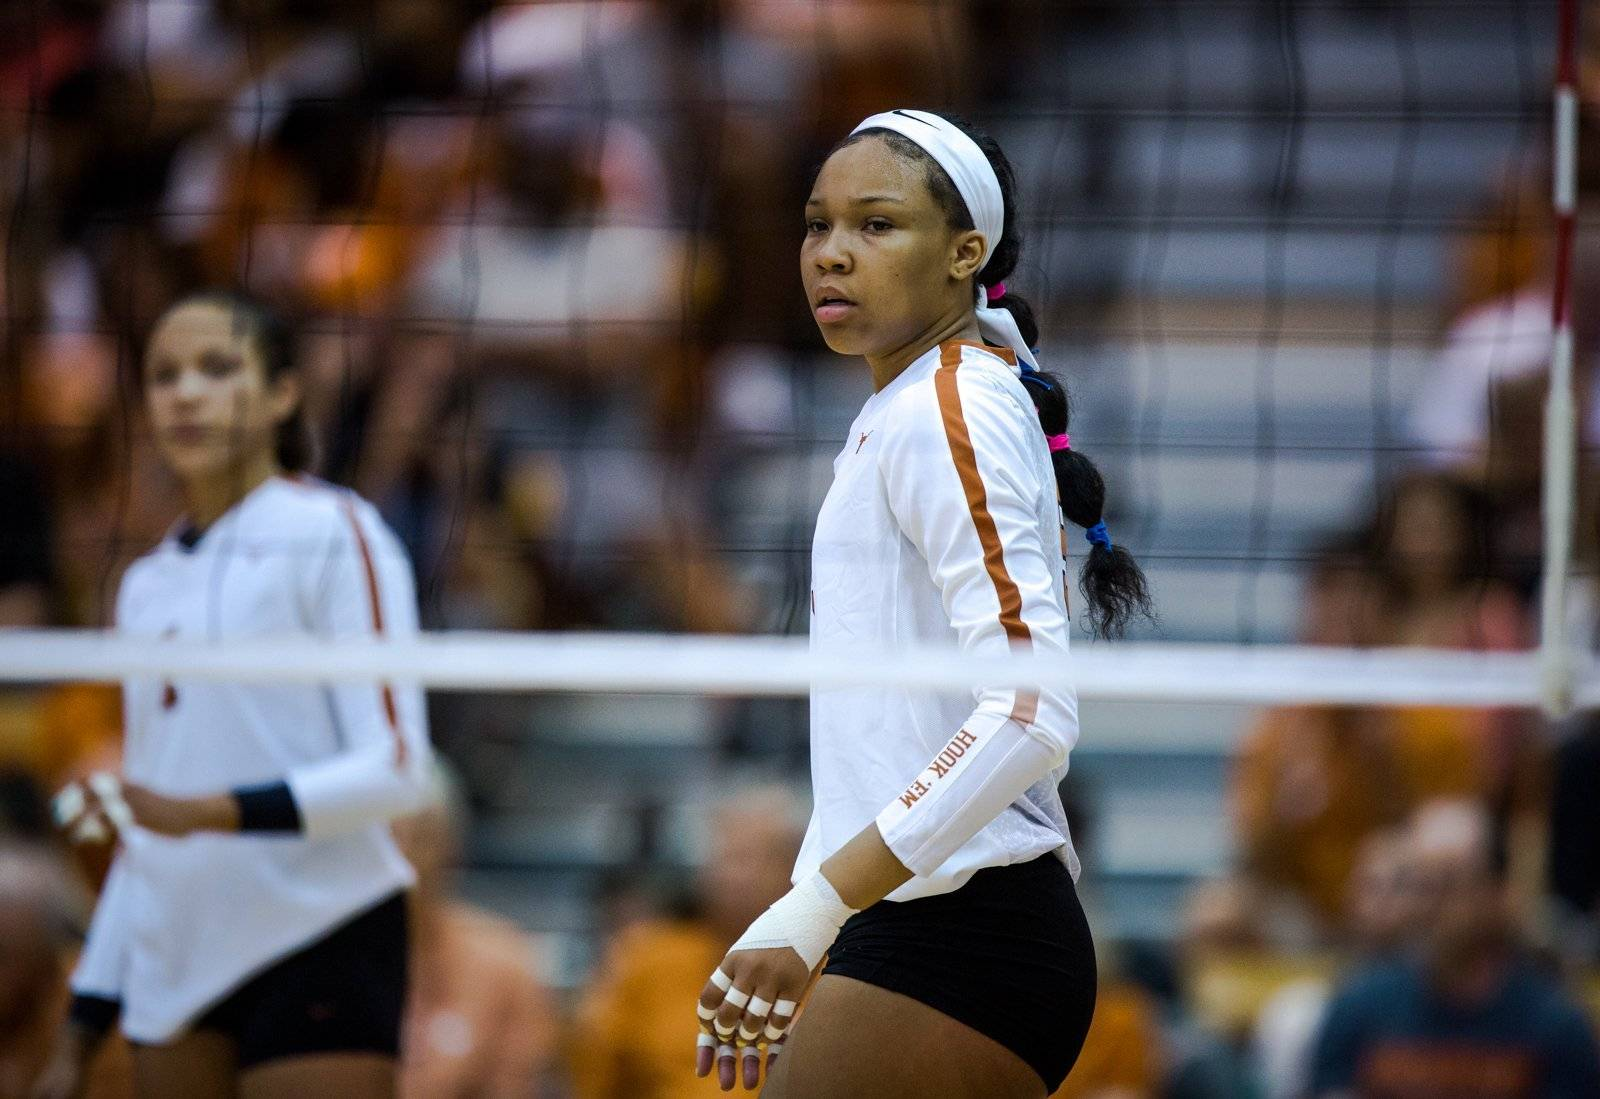 Big 12 honors Skylar Fields as its top freshman as Baylor overwhelms the awards stand